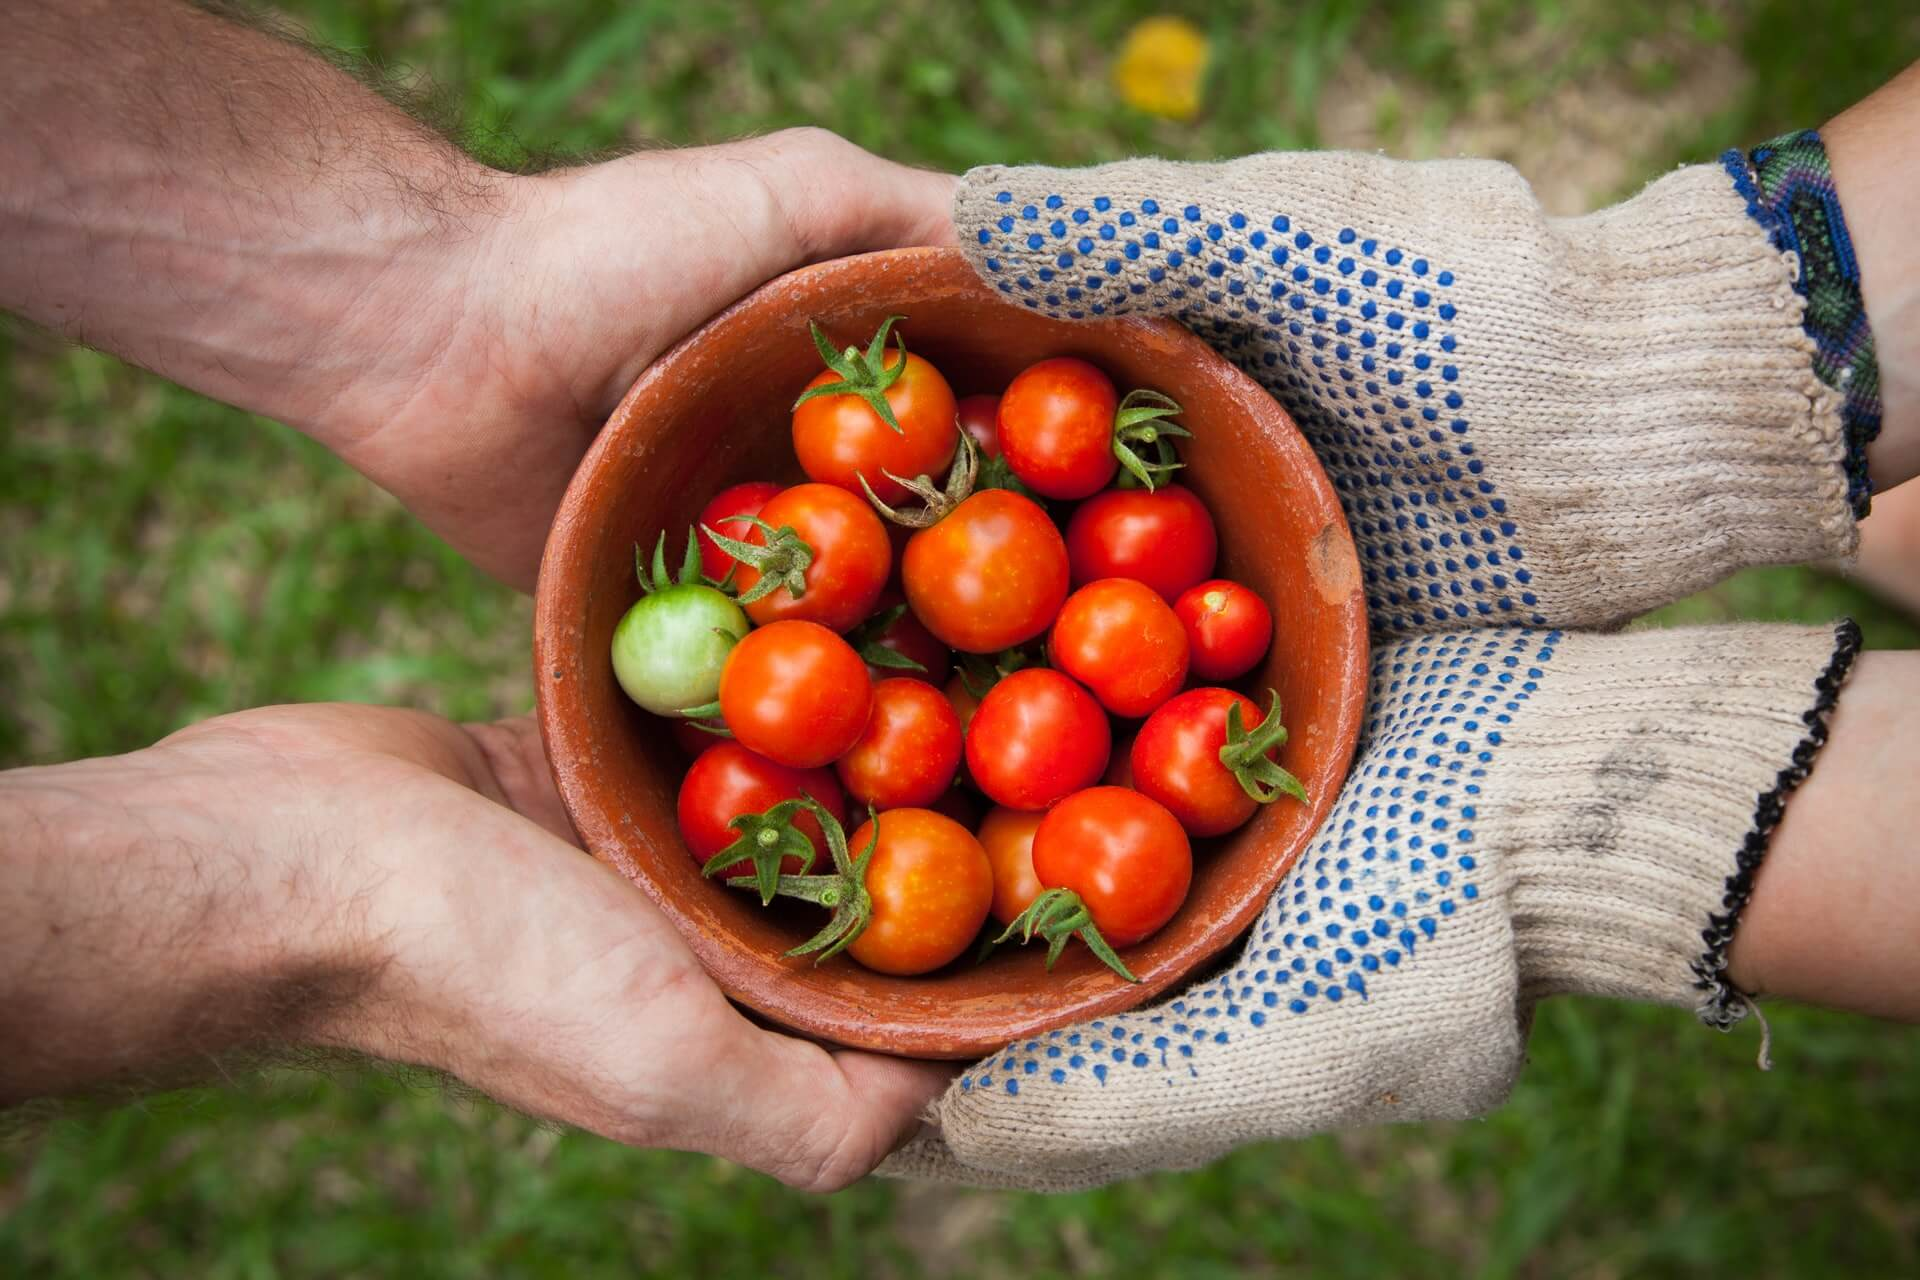 The Best Soil for Tomatoes